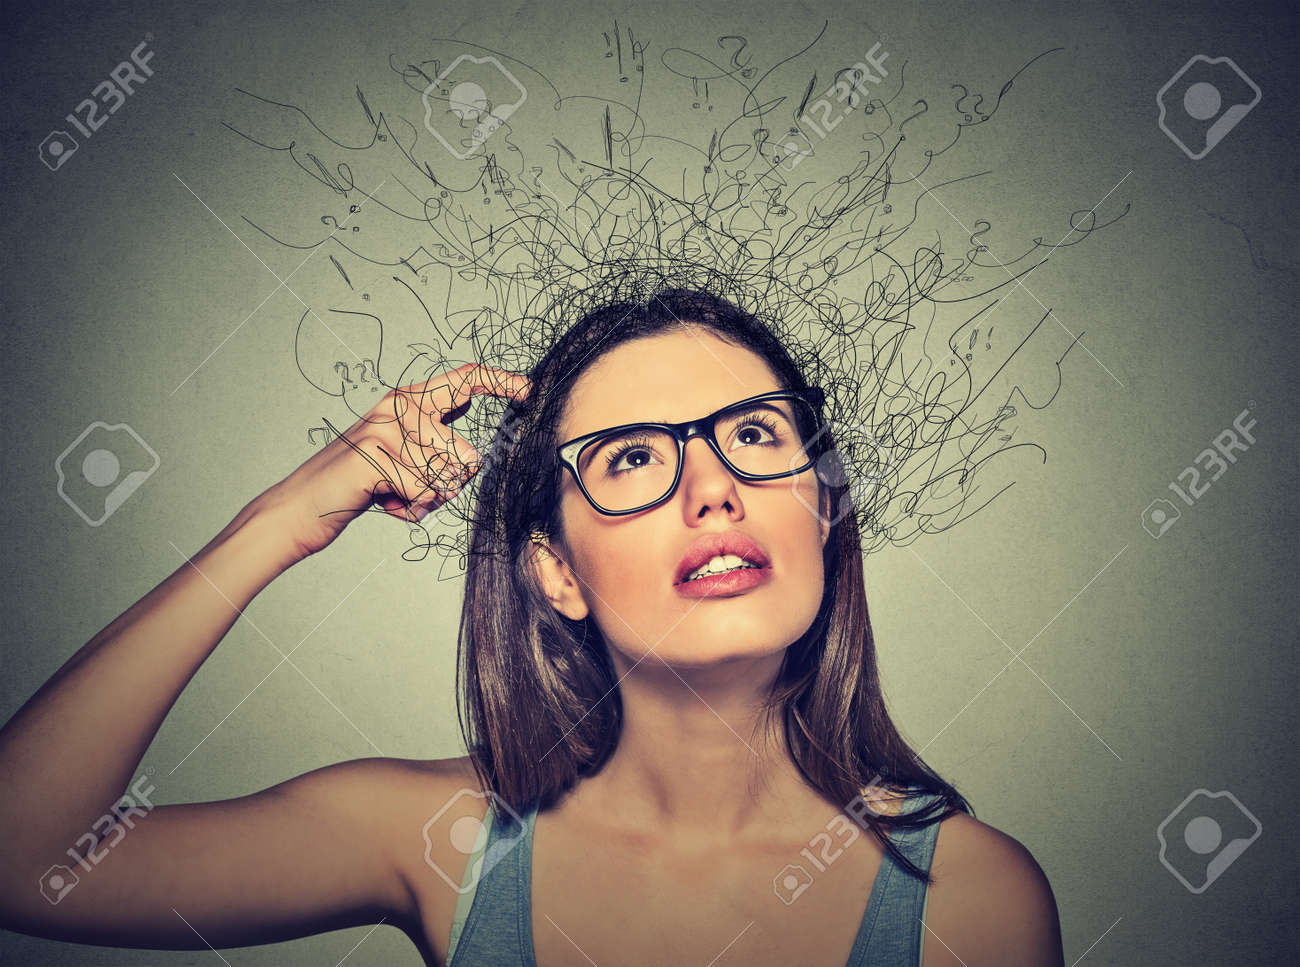 Closeup Portrait Young Woman Scratching Head Thinking Daydreaming With Brain Melting Into Lines Question Marks